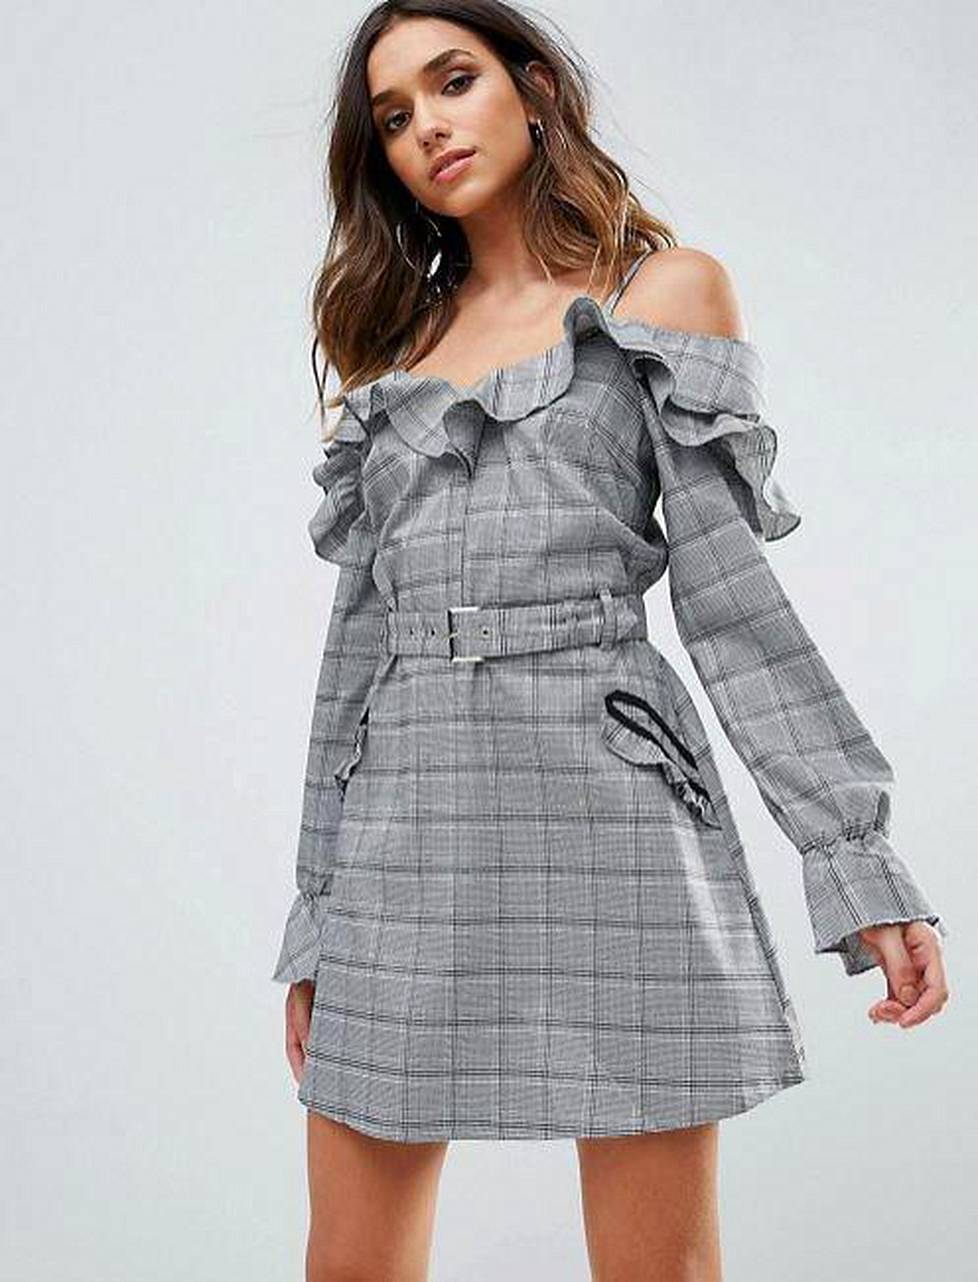 Mekko 47,30 €, Missguided / Asos.